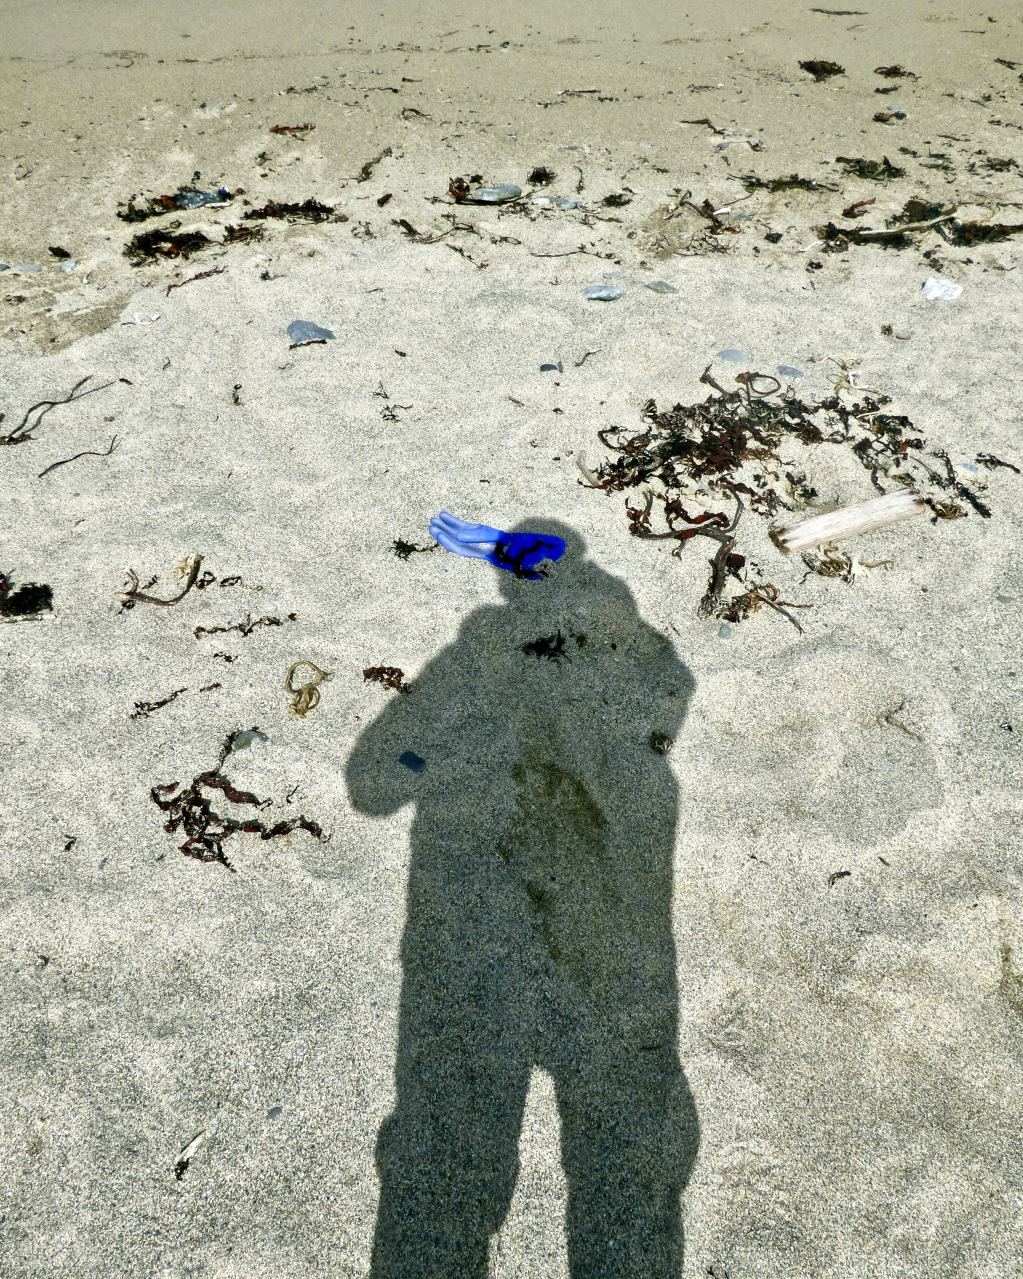 Self Portrait, Rubber Glove, Bardsey Island 2018